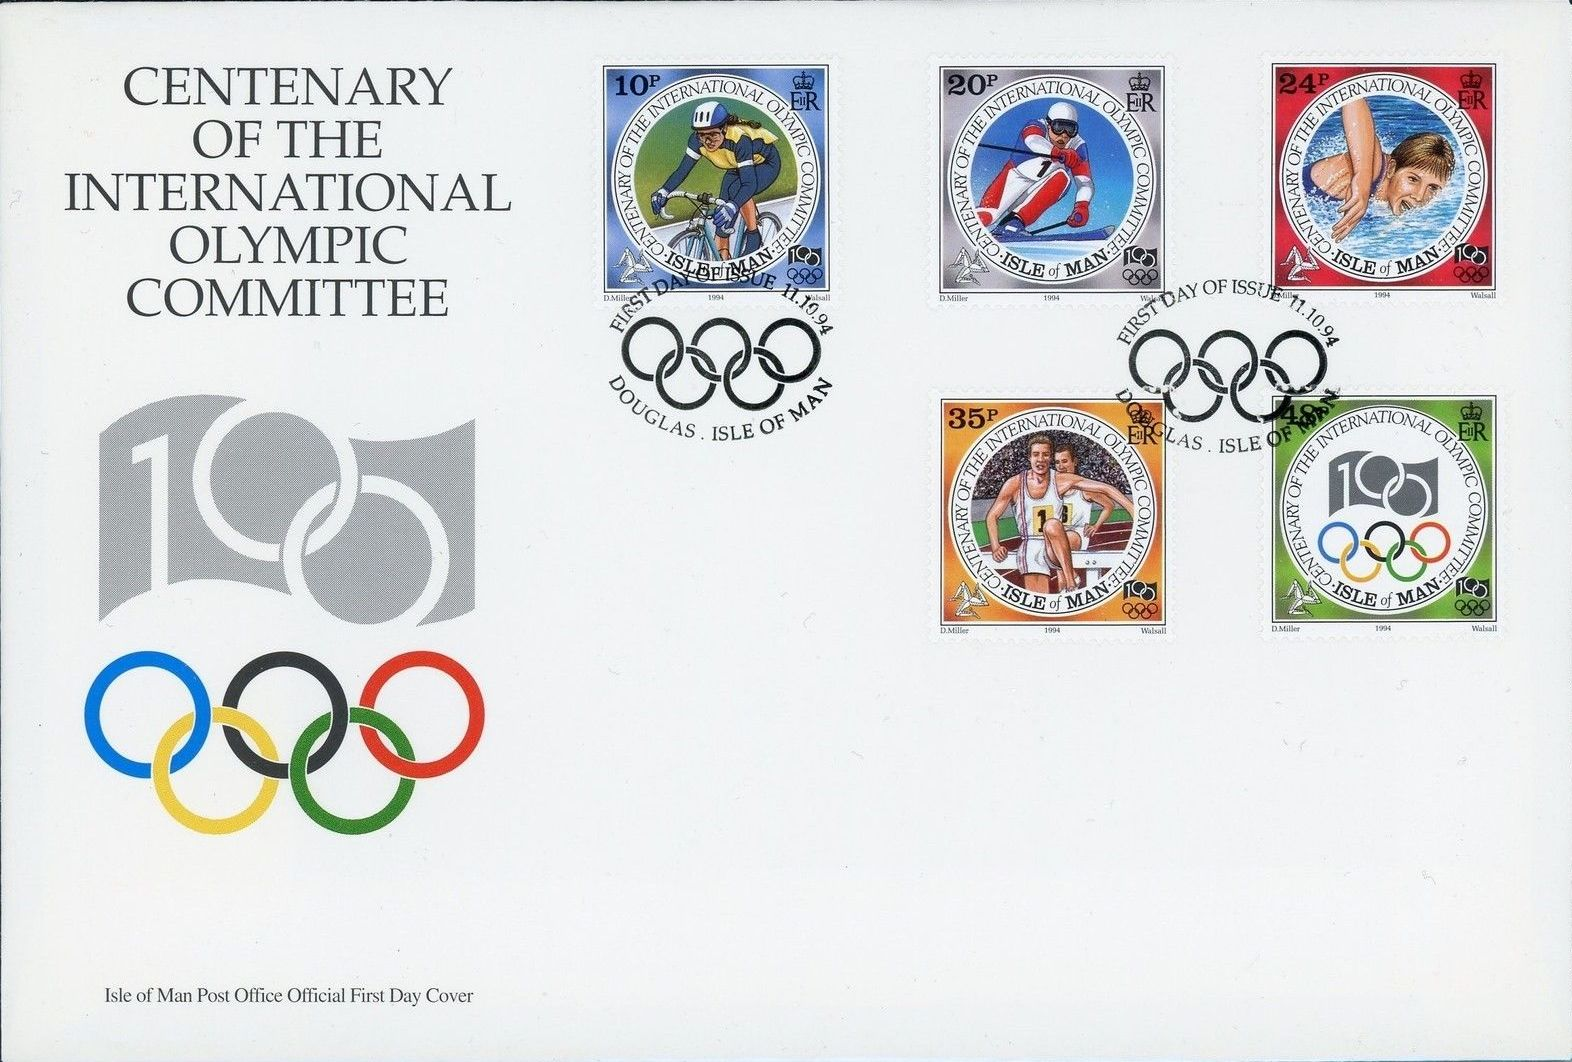 Isle of Man 1994 Centenary of the International Olympic Committee